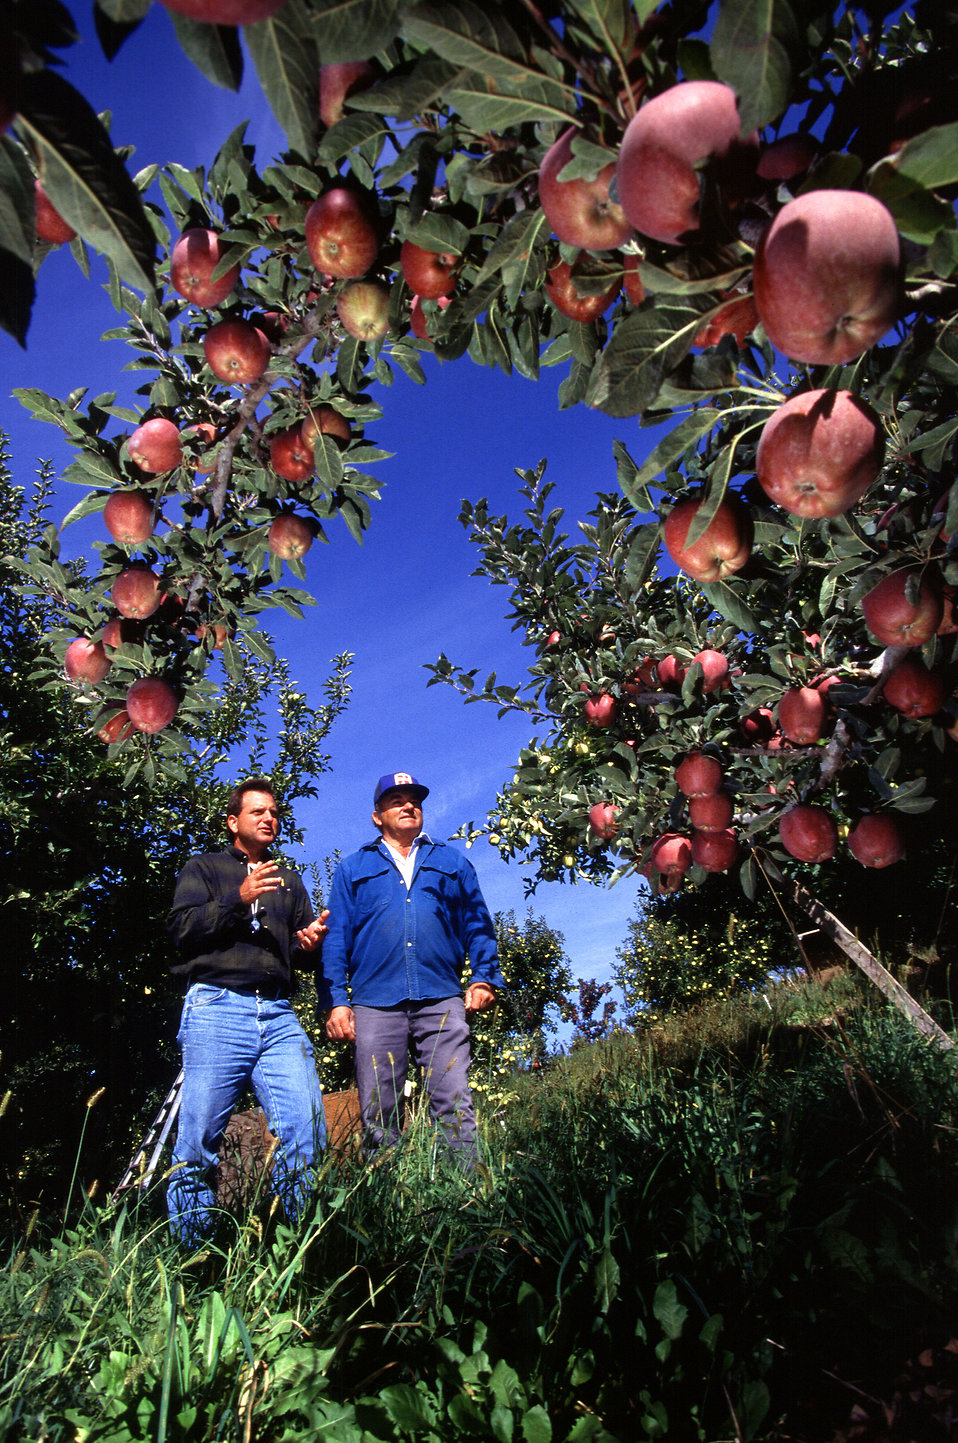 Farmers looking at a crop of apples : Free Stock Photo